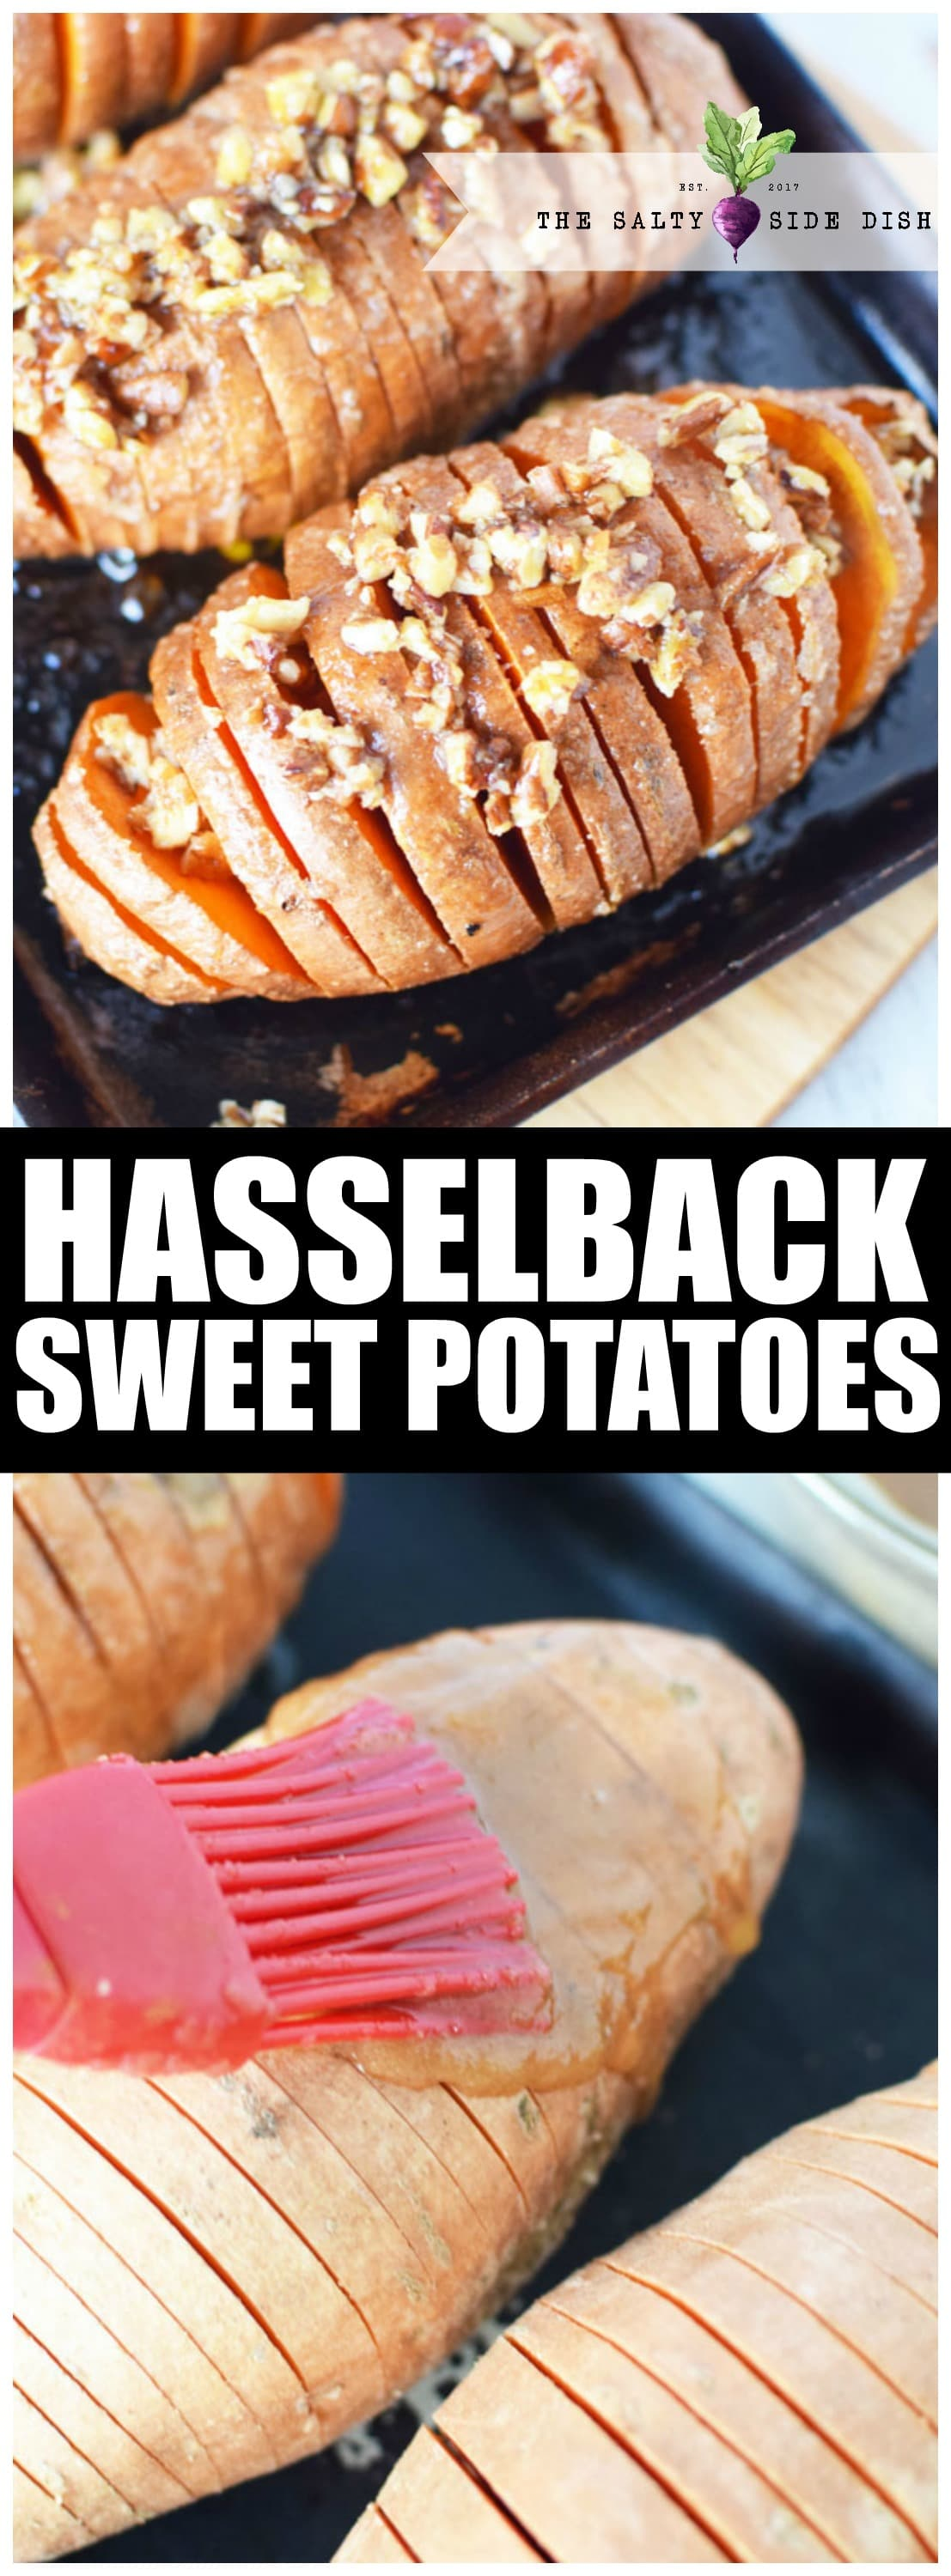 hasselback sweet potato recipe